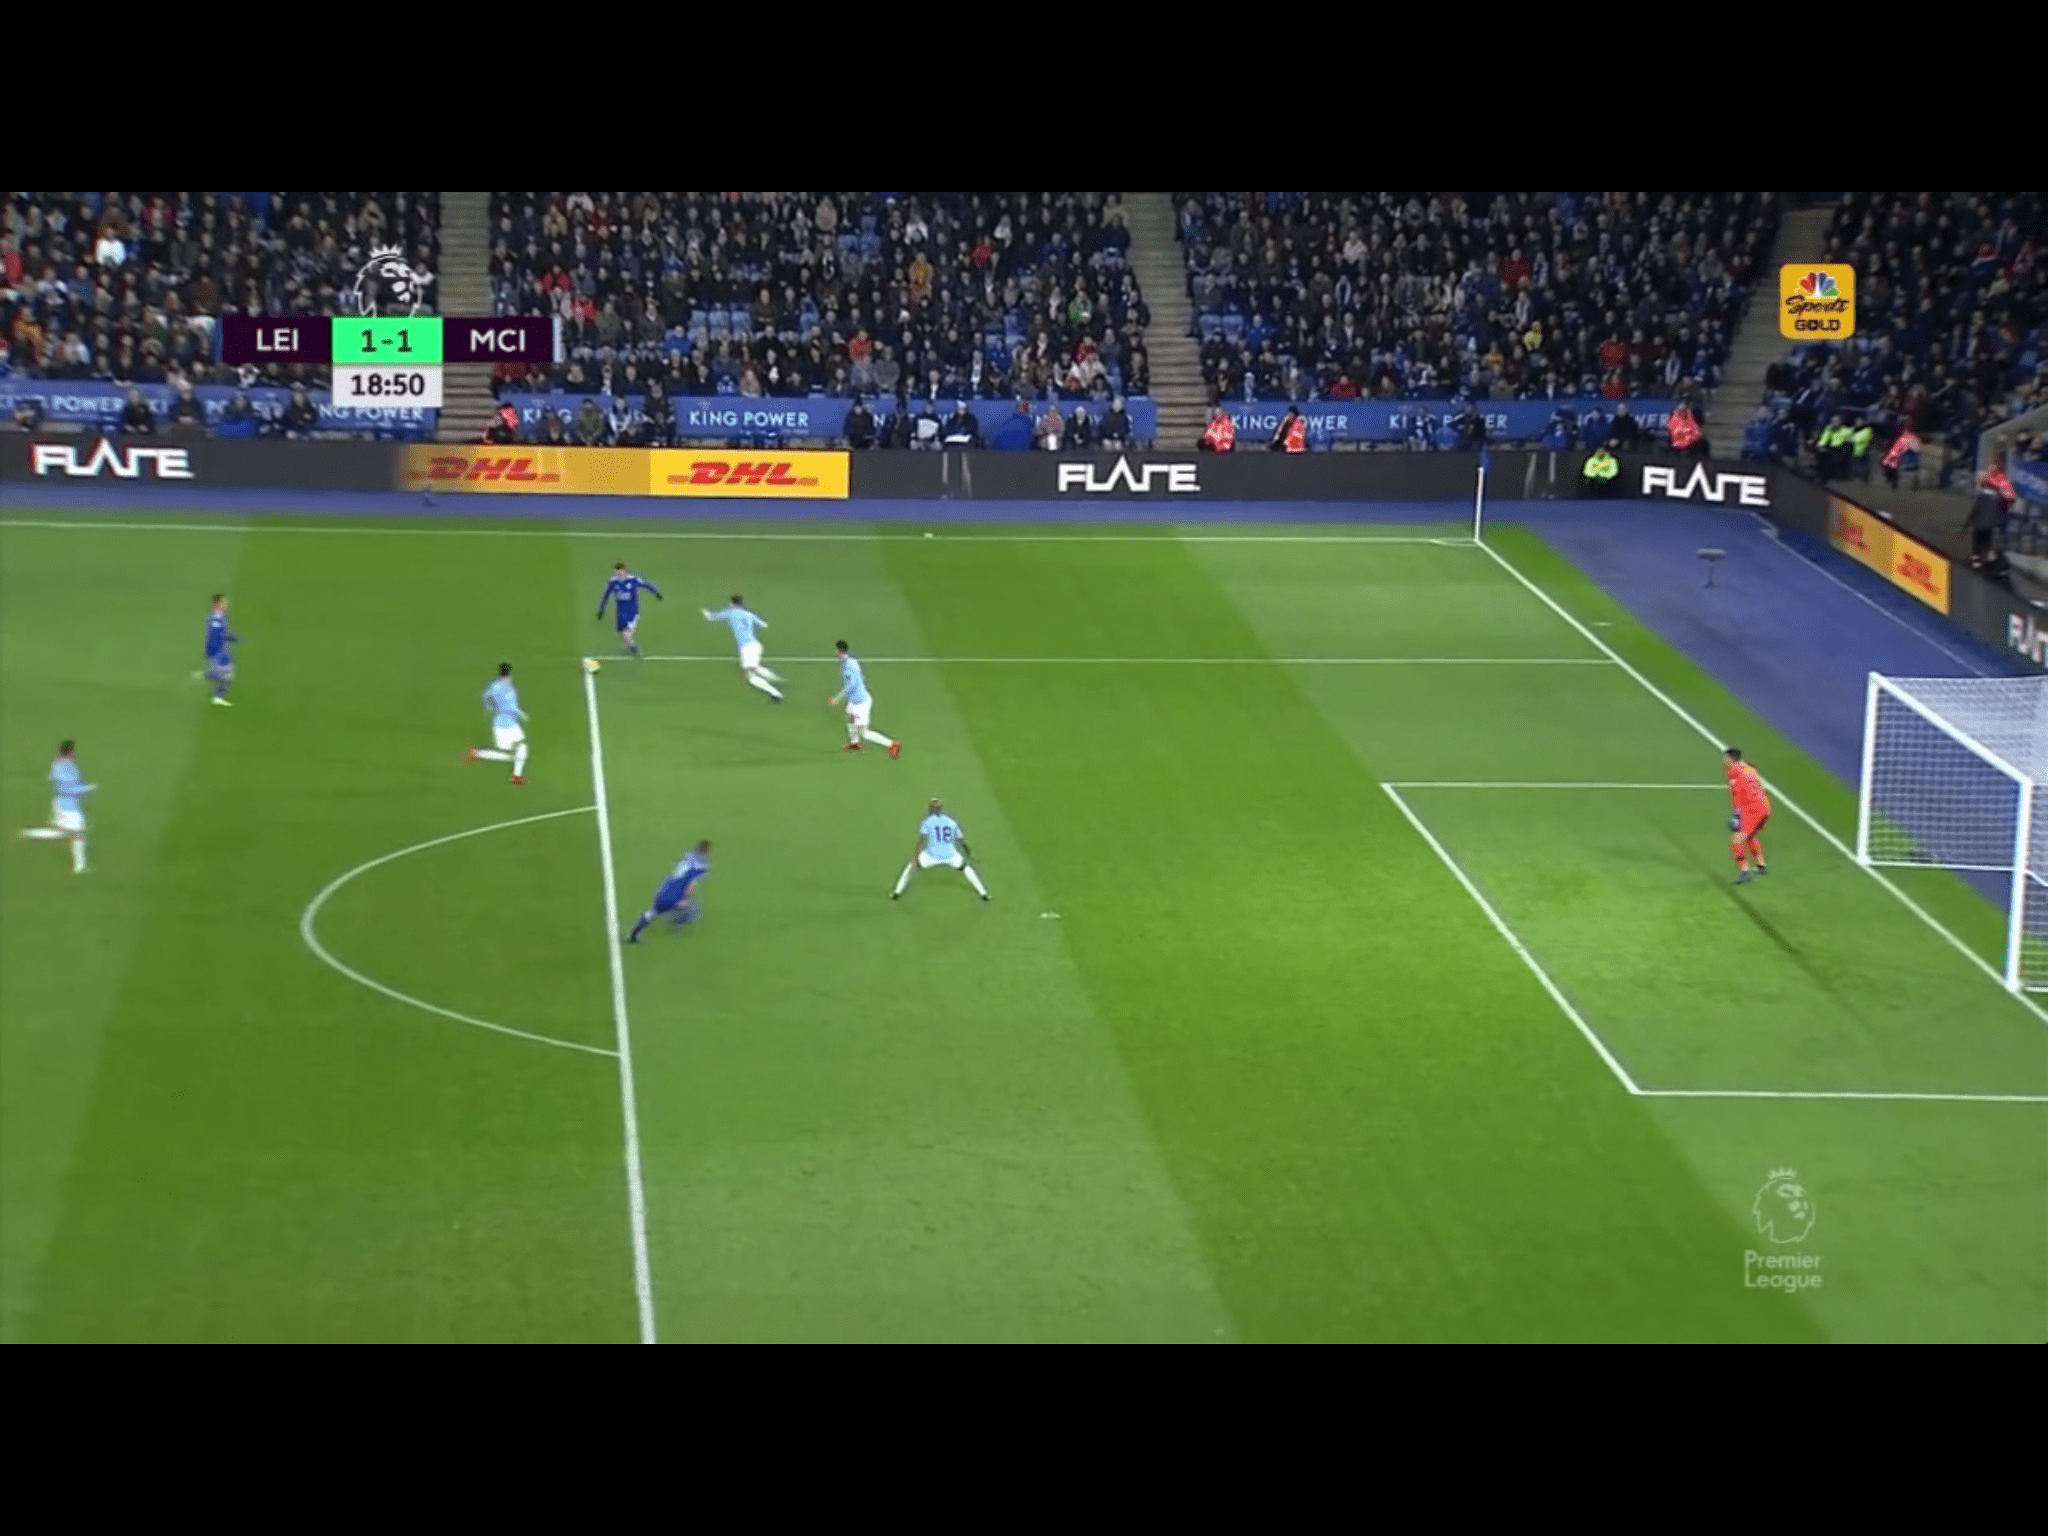 Despite the man advantage Manchester City's poor positioning and lack of pressure lead to Albrighton's goal. Screen capture courtesy of NBCSports